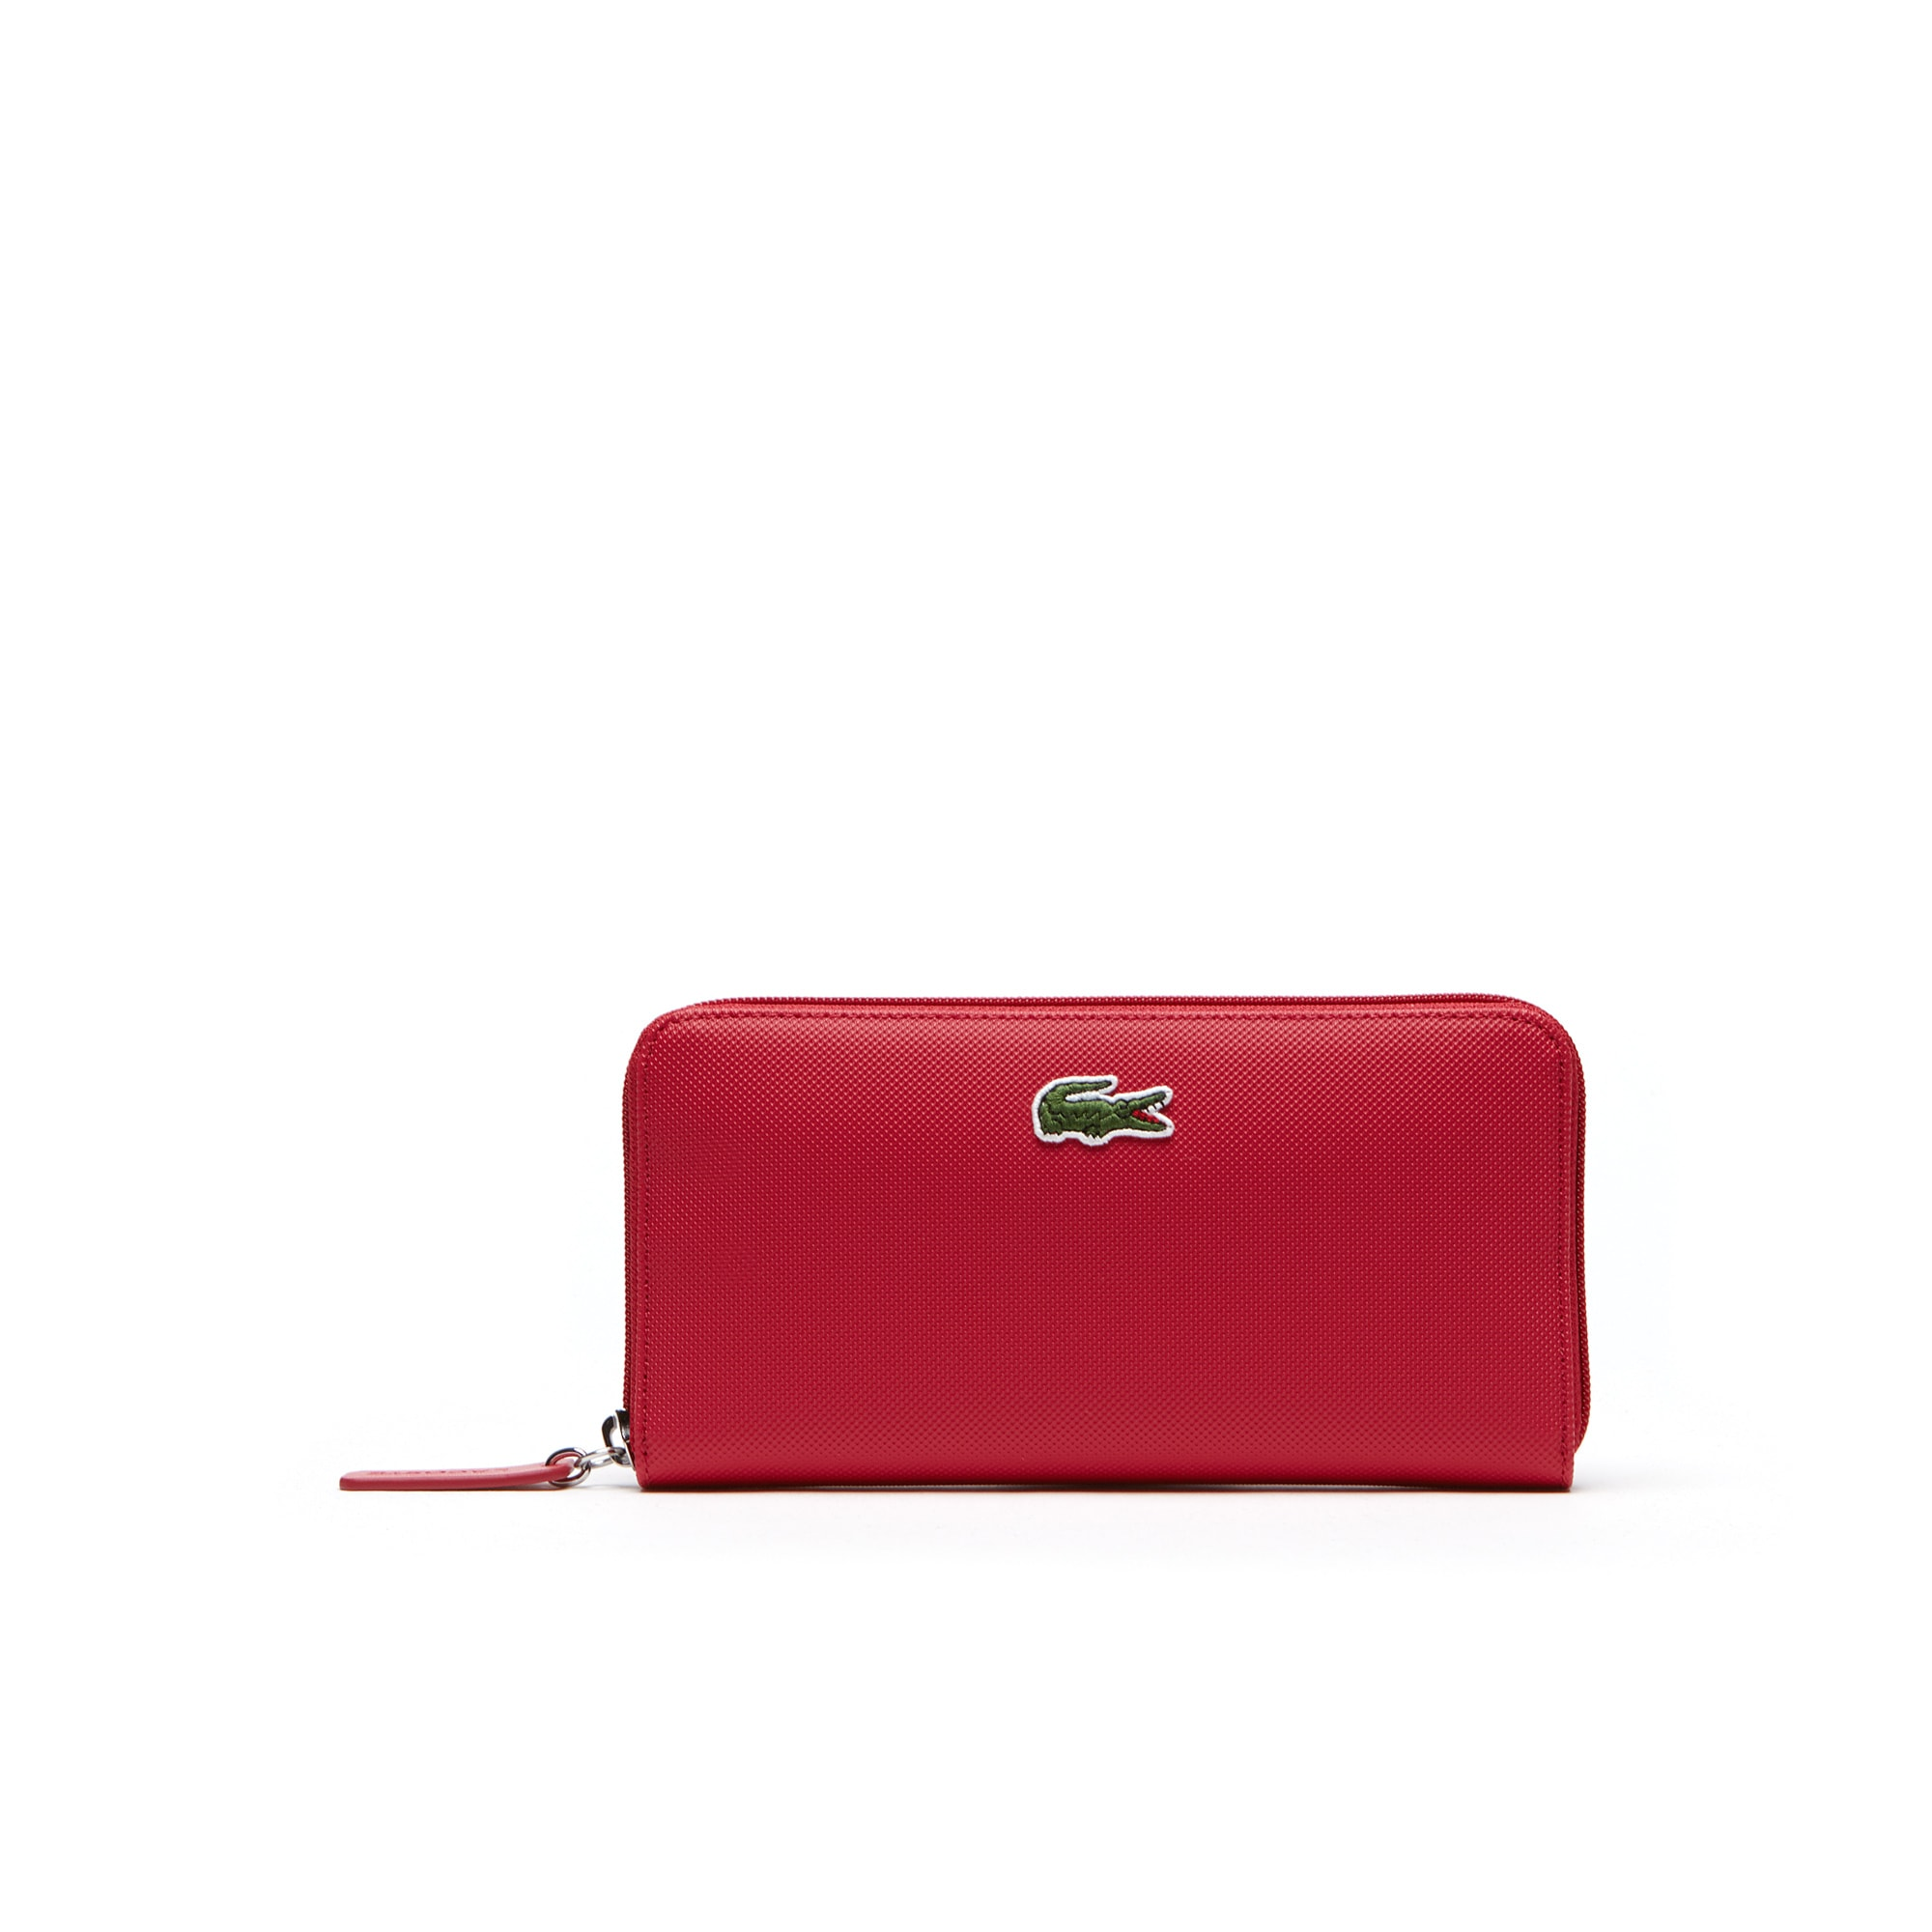 Small Leather Goods  1d553360a